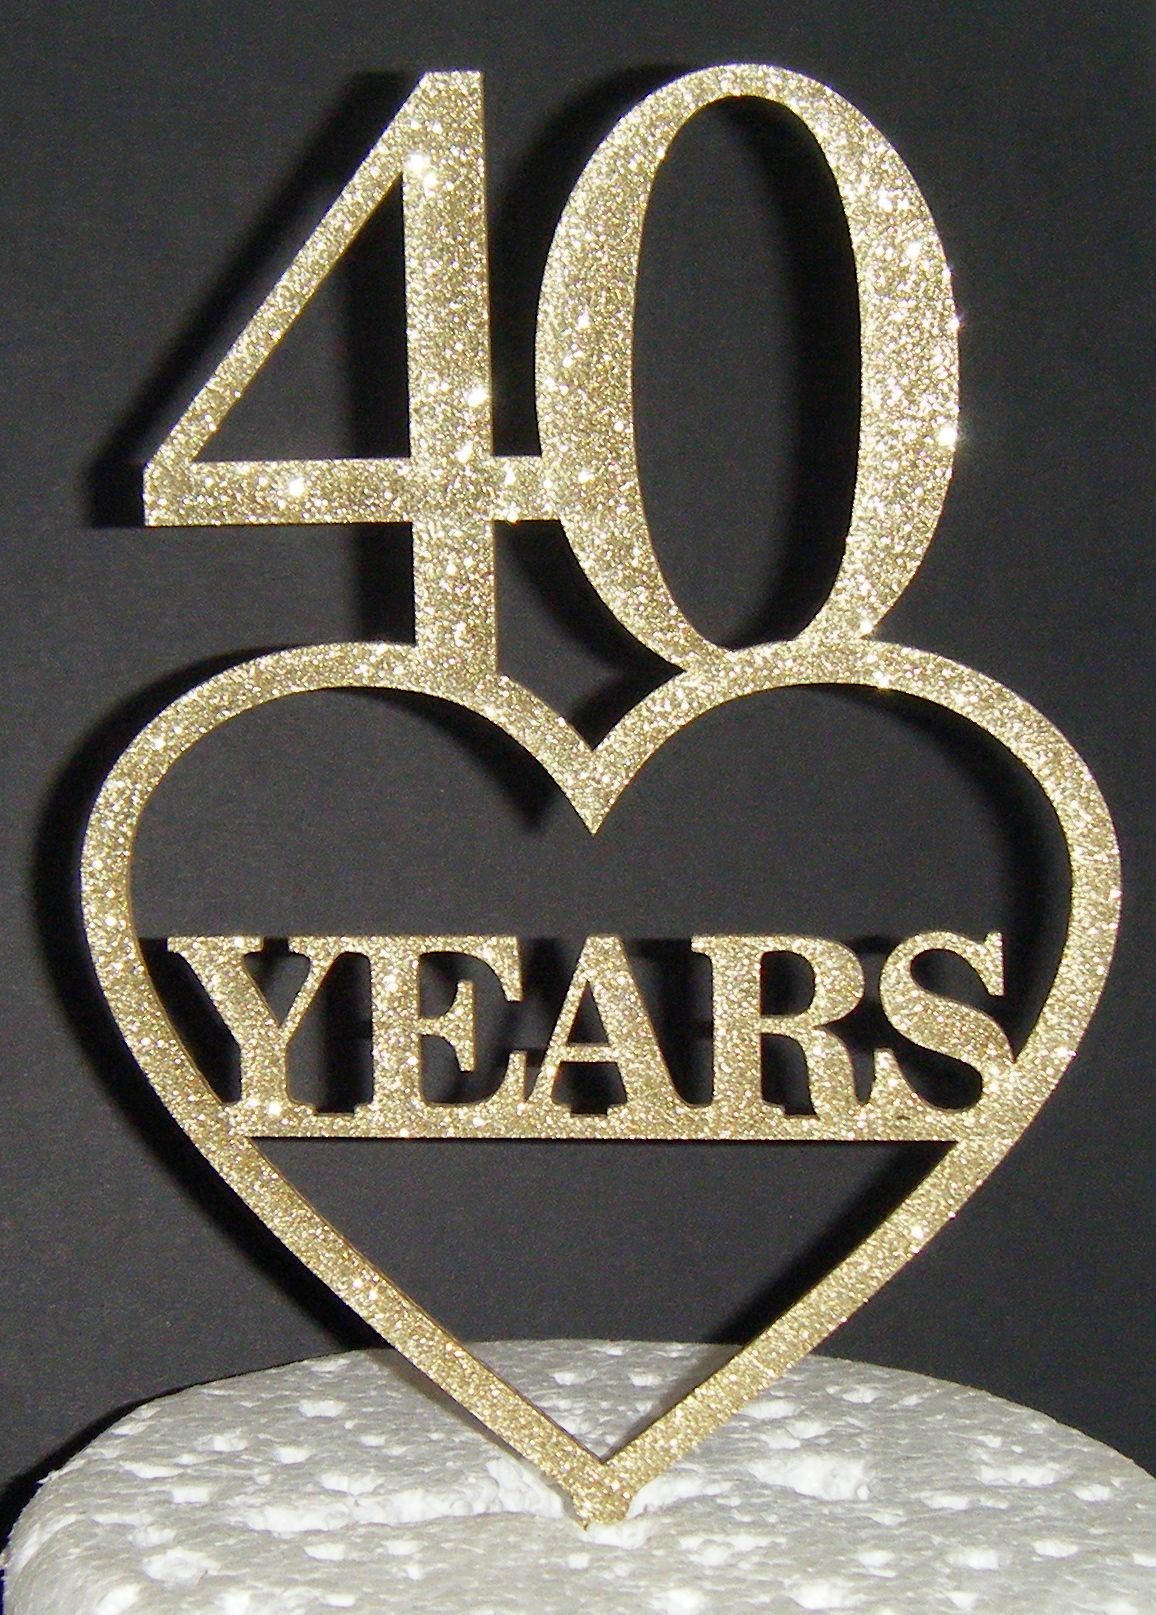 40 Years Heart birthday or anniversary Cake Topper